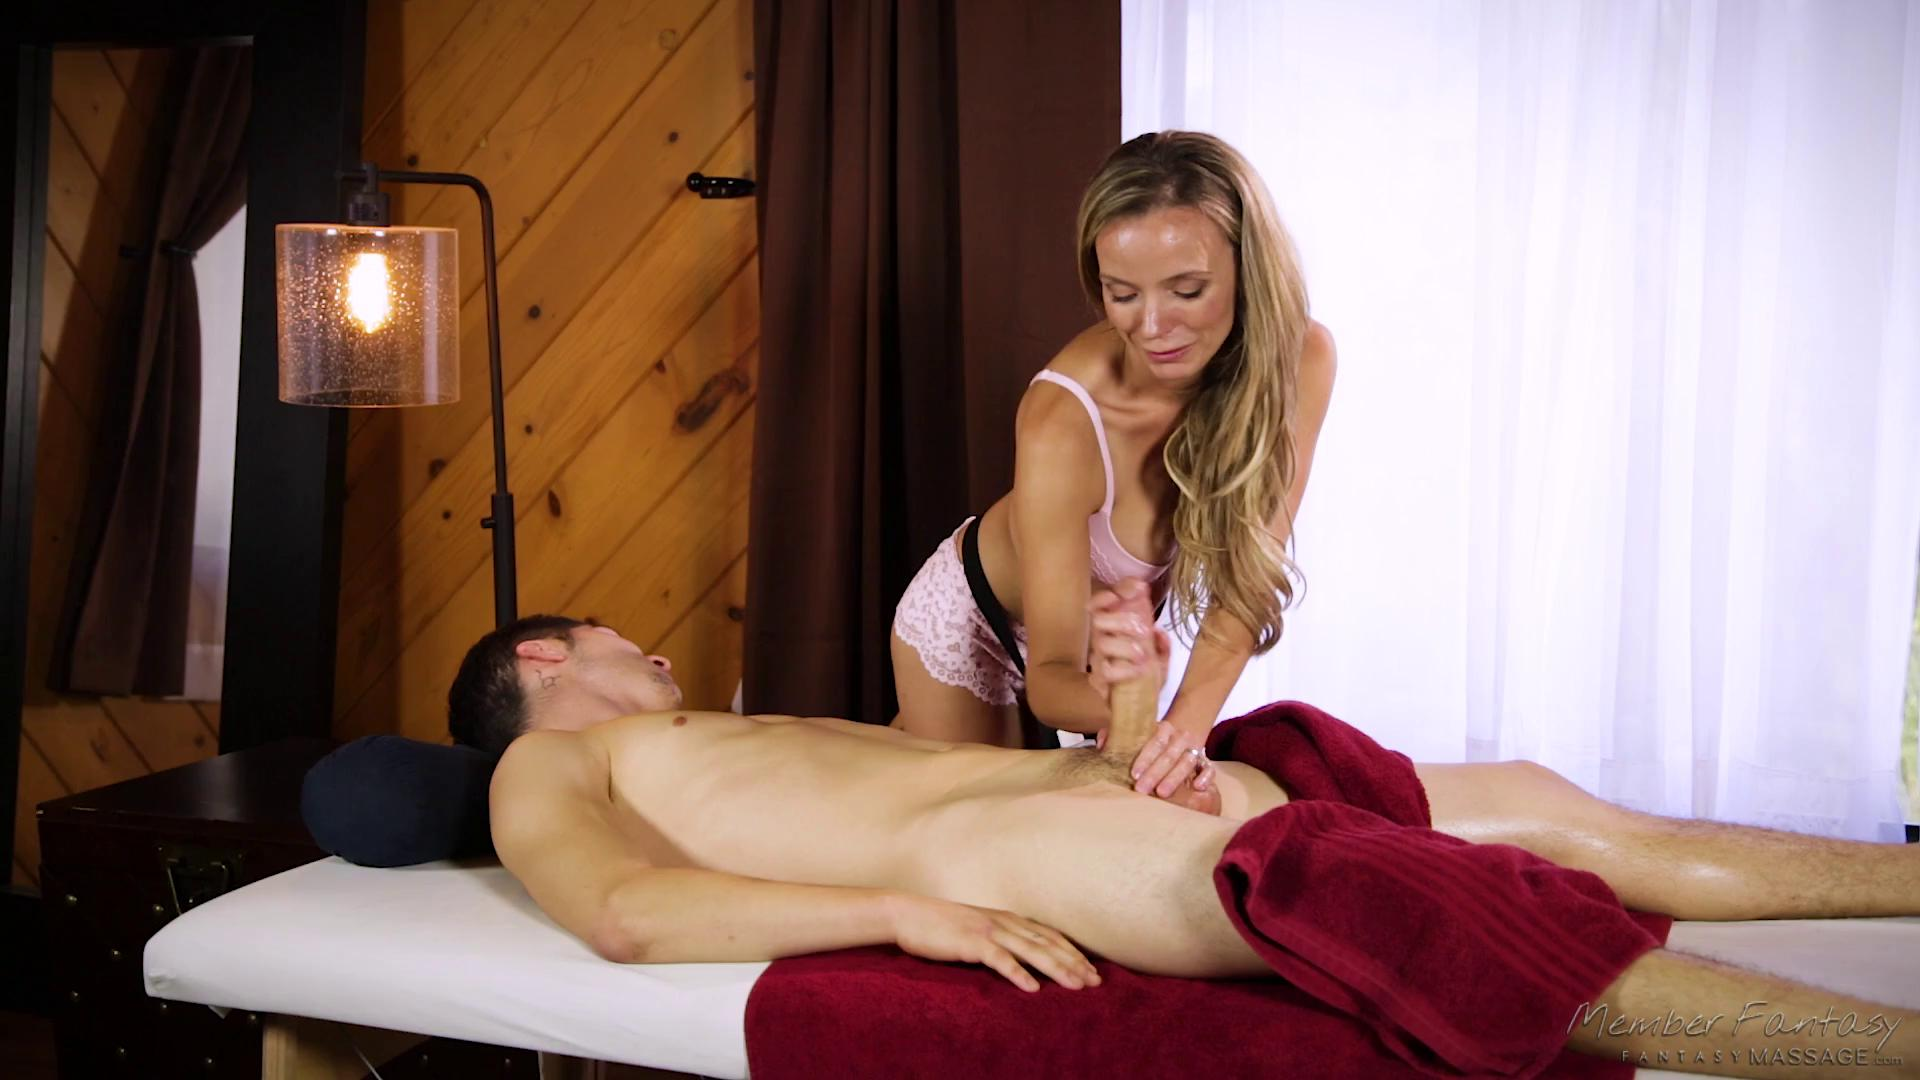 FantasyMassage – Pristine Edge Chocolate Massage